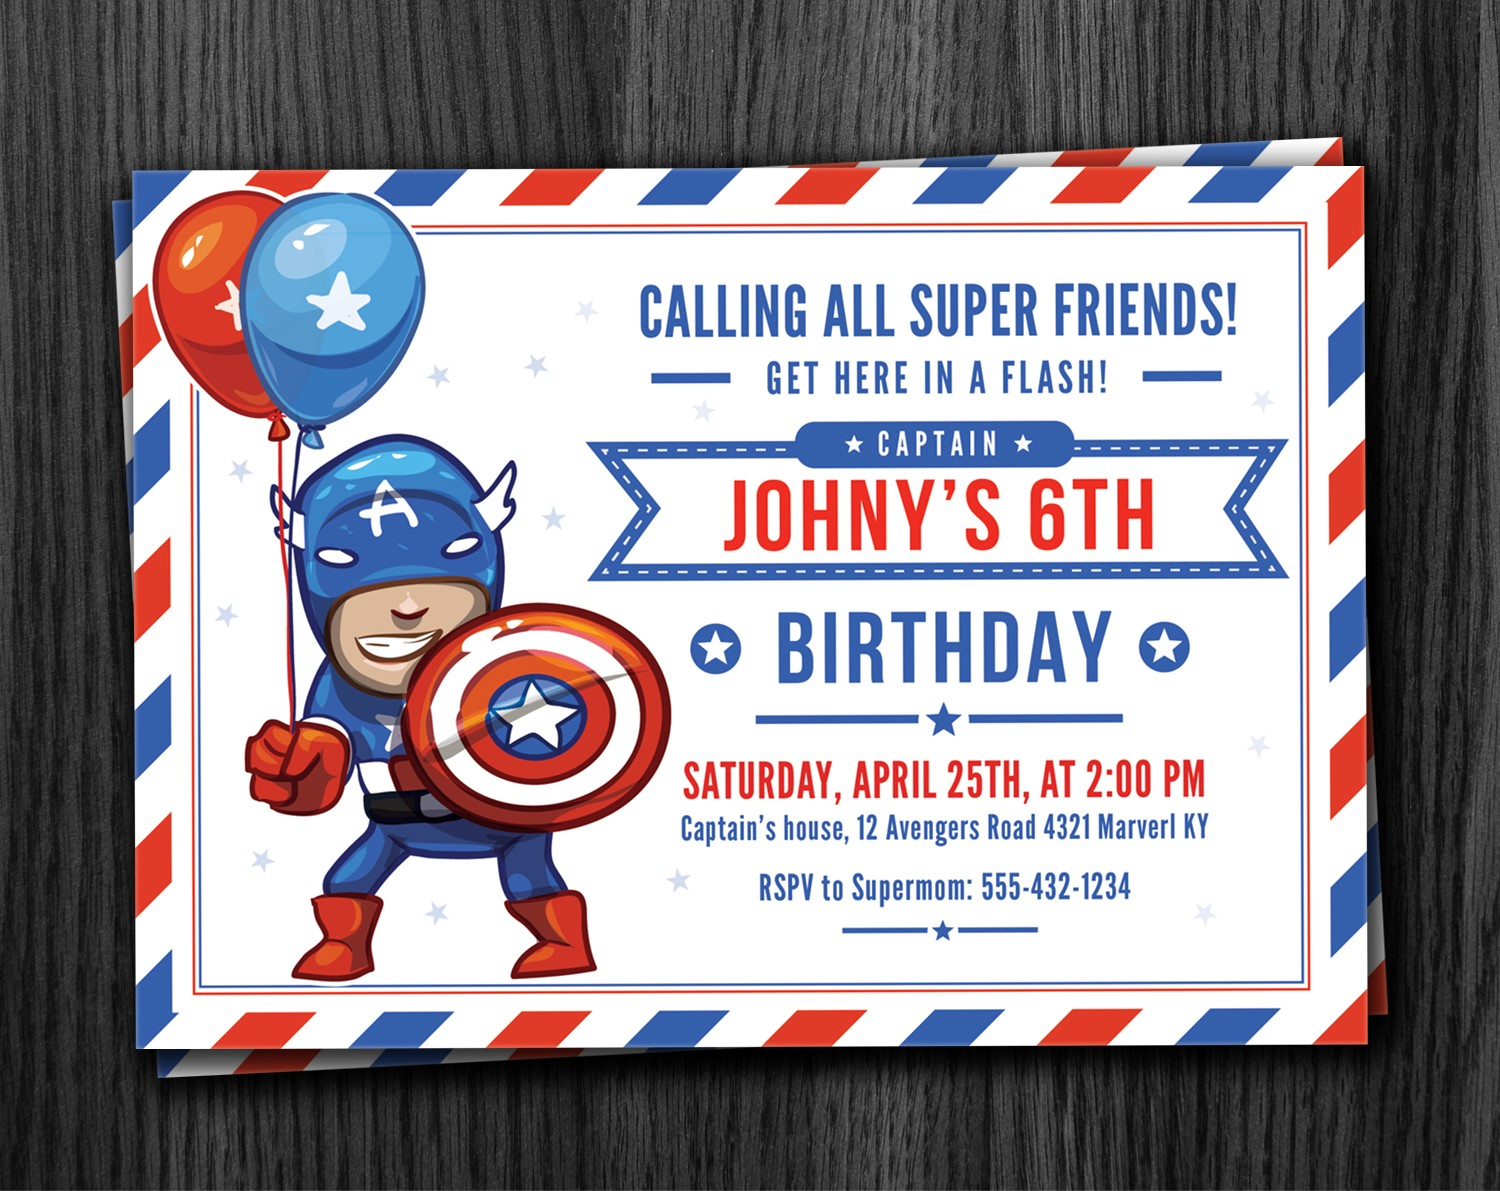 captain america birthday card template ; Cool-Captain-America-Birthday-Invitations-As-An-Extra-Ideas-About-Free-Birthday-Invitation-Templates